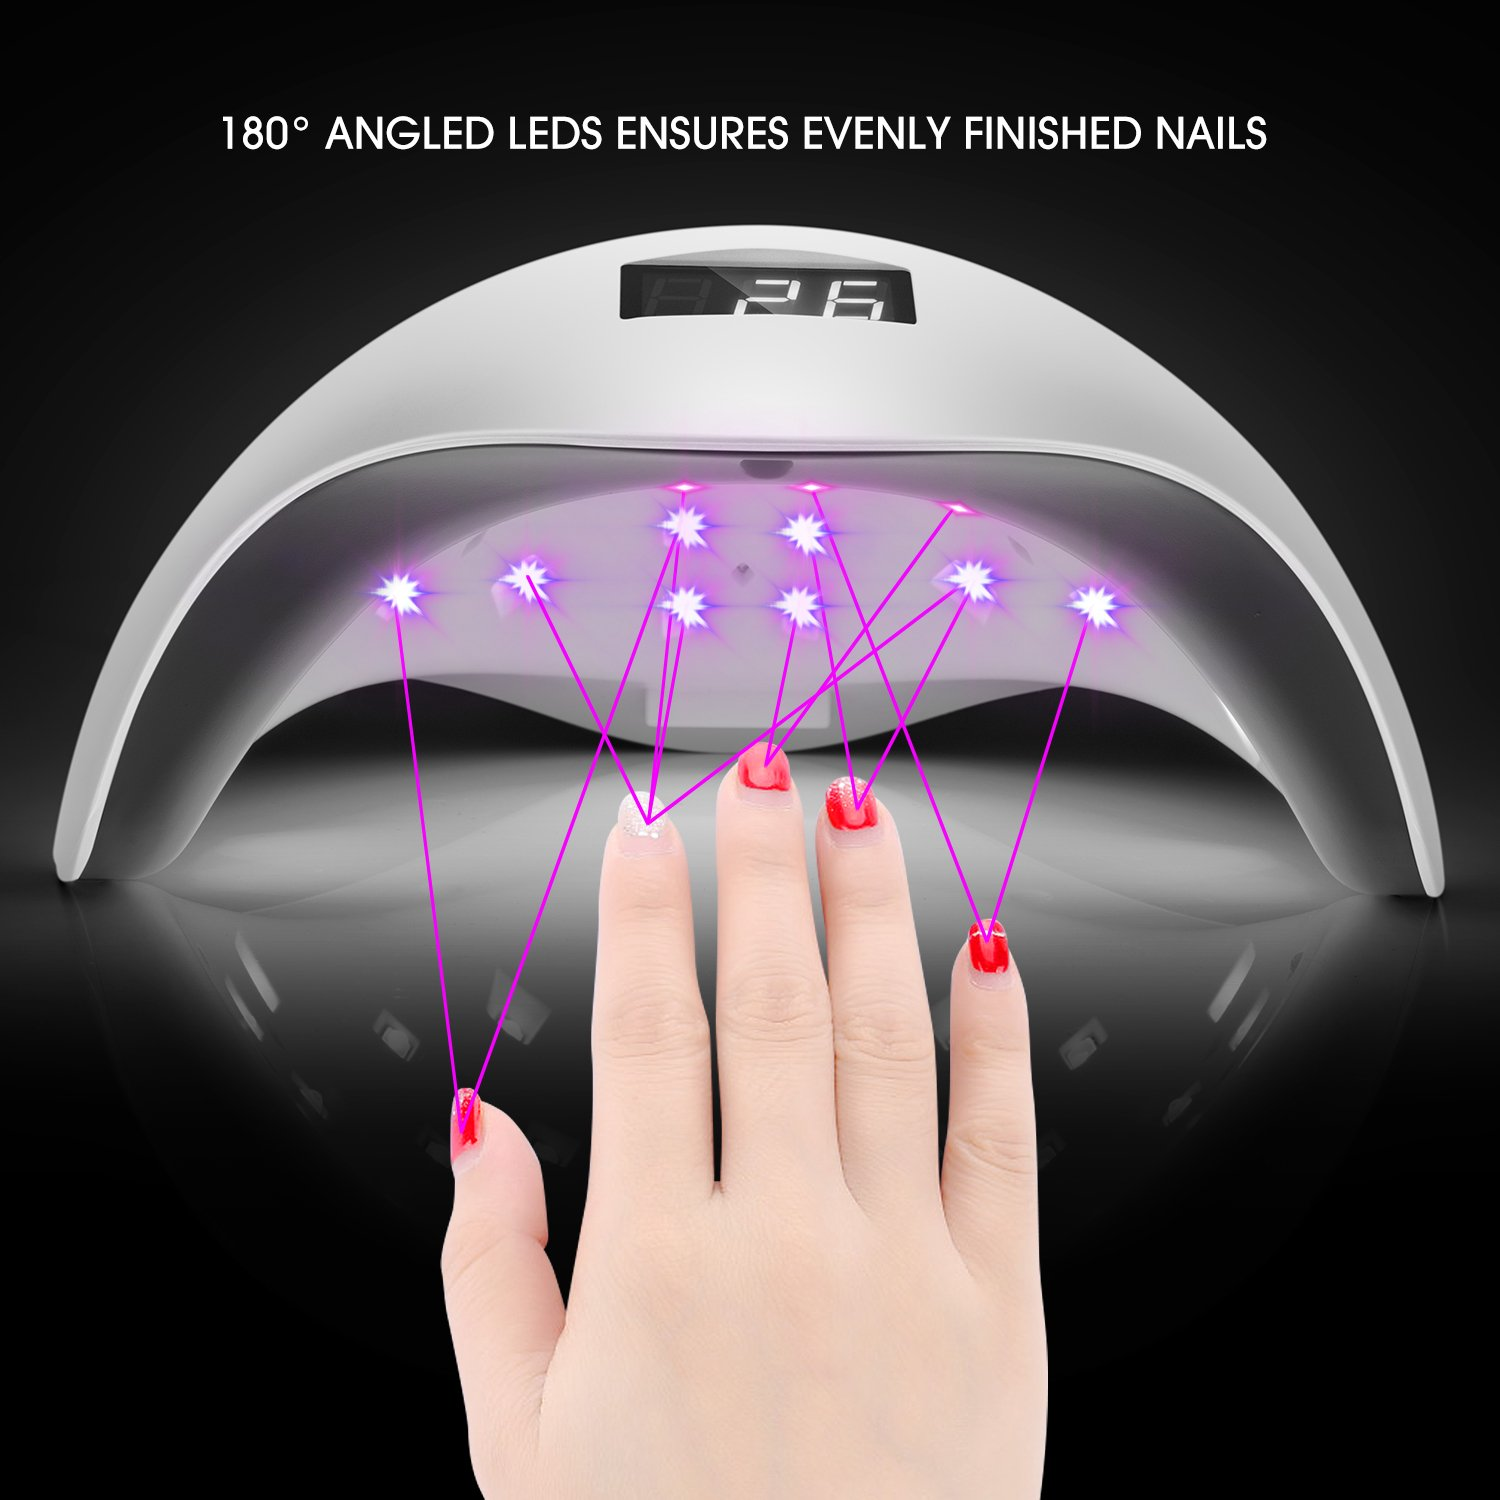 Buy 36W UV LED Nail Lamp Manicure/Pedicure Nail Dryer Nail Light ...